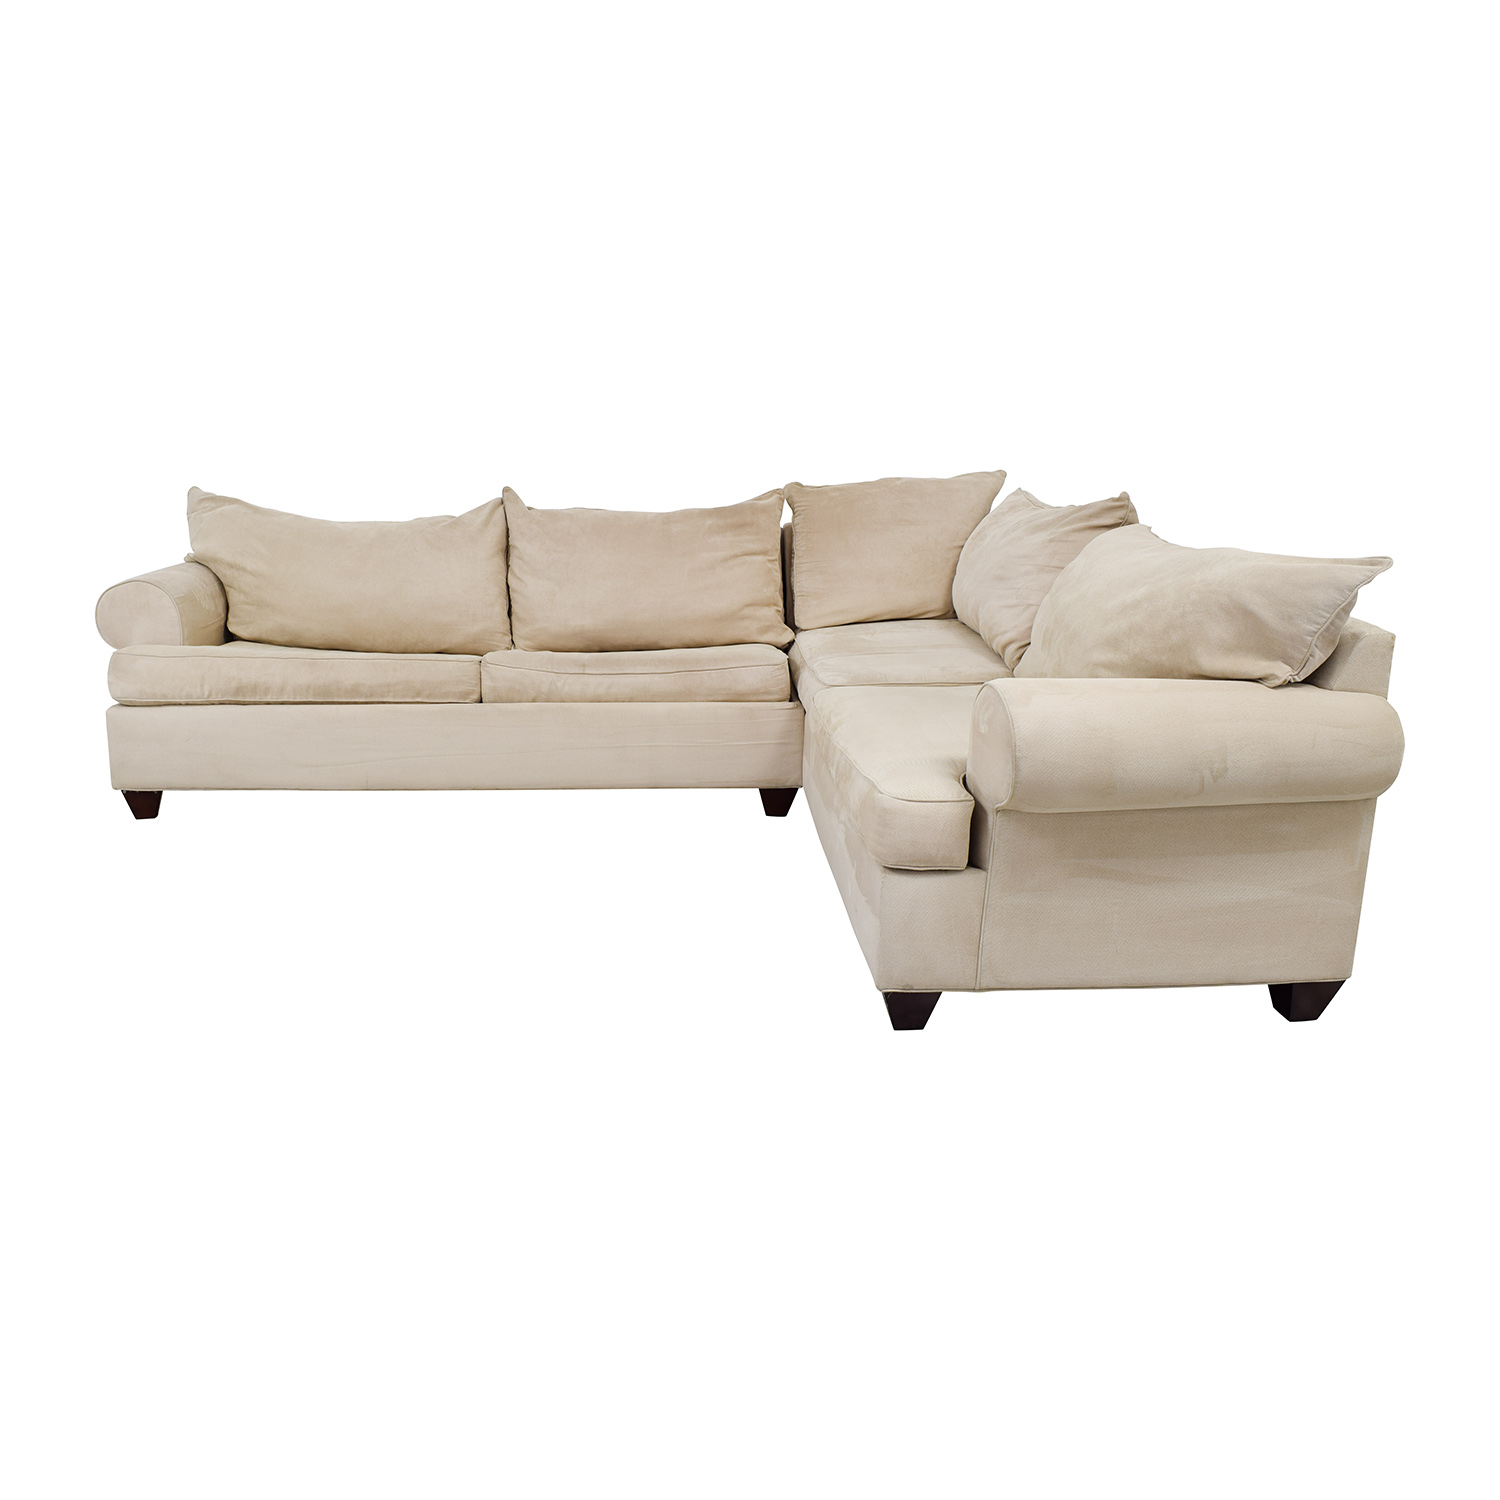 59% OFF - Raymour & Flanigan Raymour & Flanigan Sectional Sleeper Sofa /  Sofas